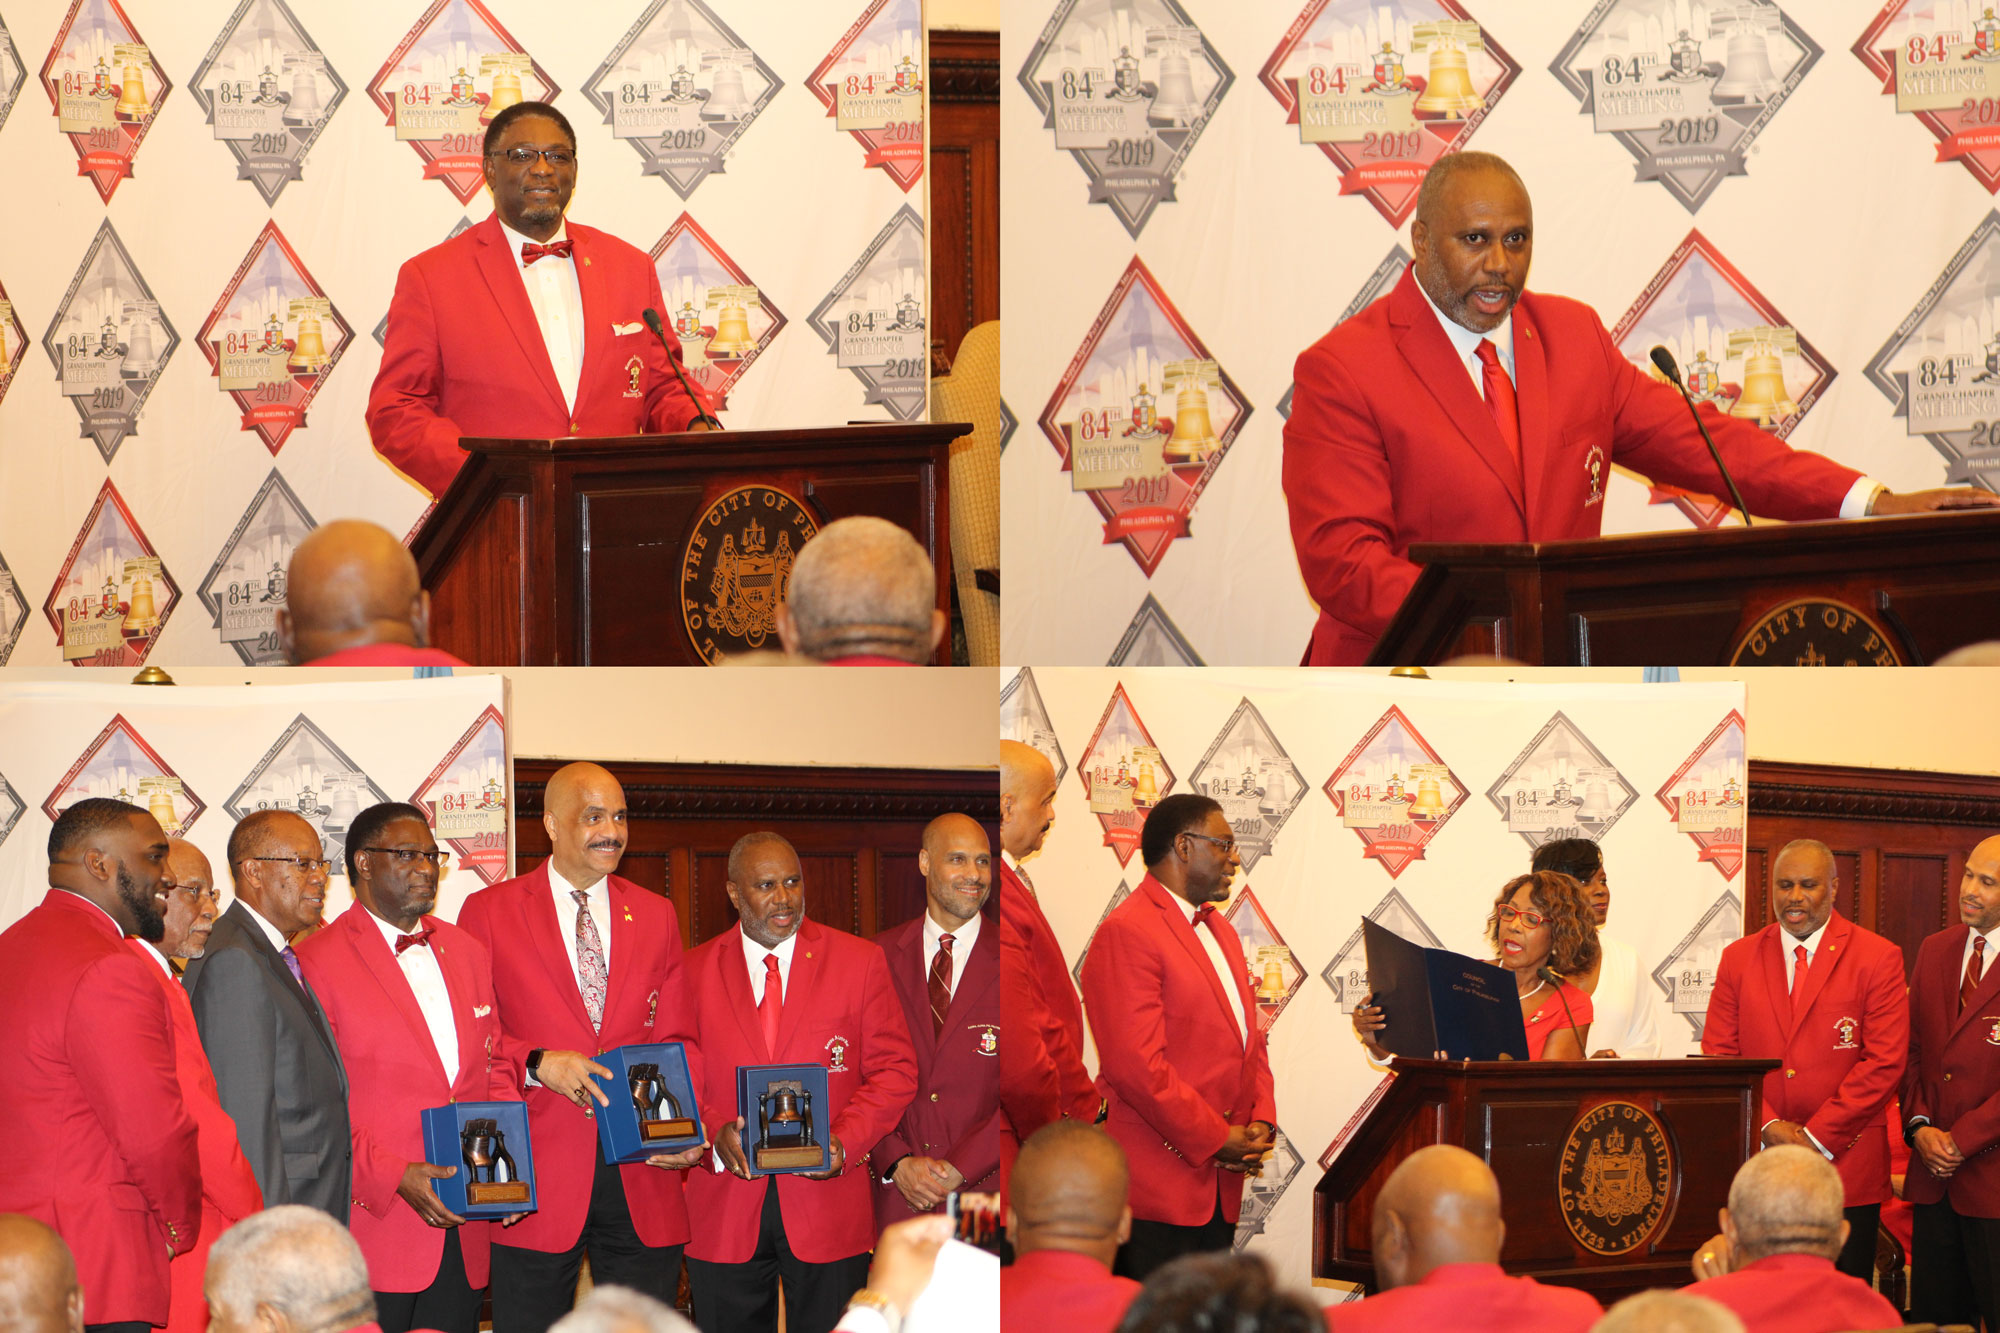 Kappa Alpha Psi Fraternity Is Coming to Philadelphia in 2019